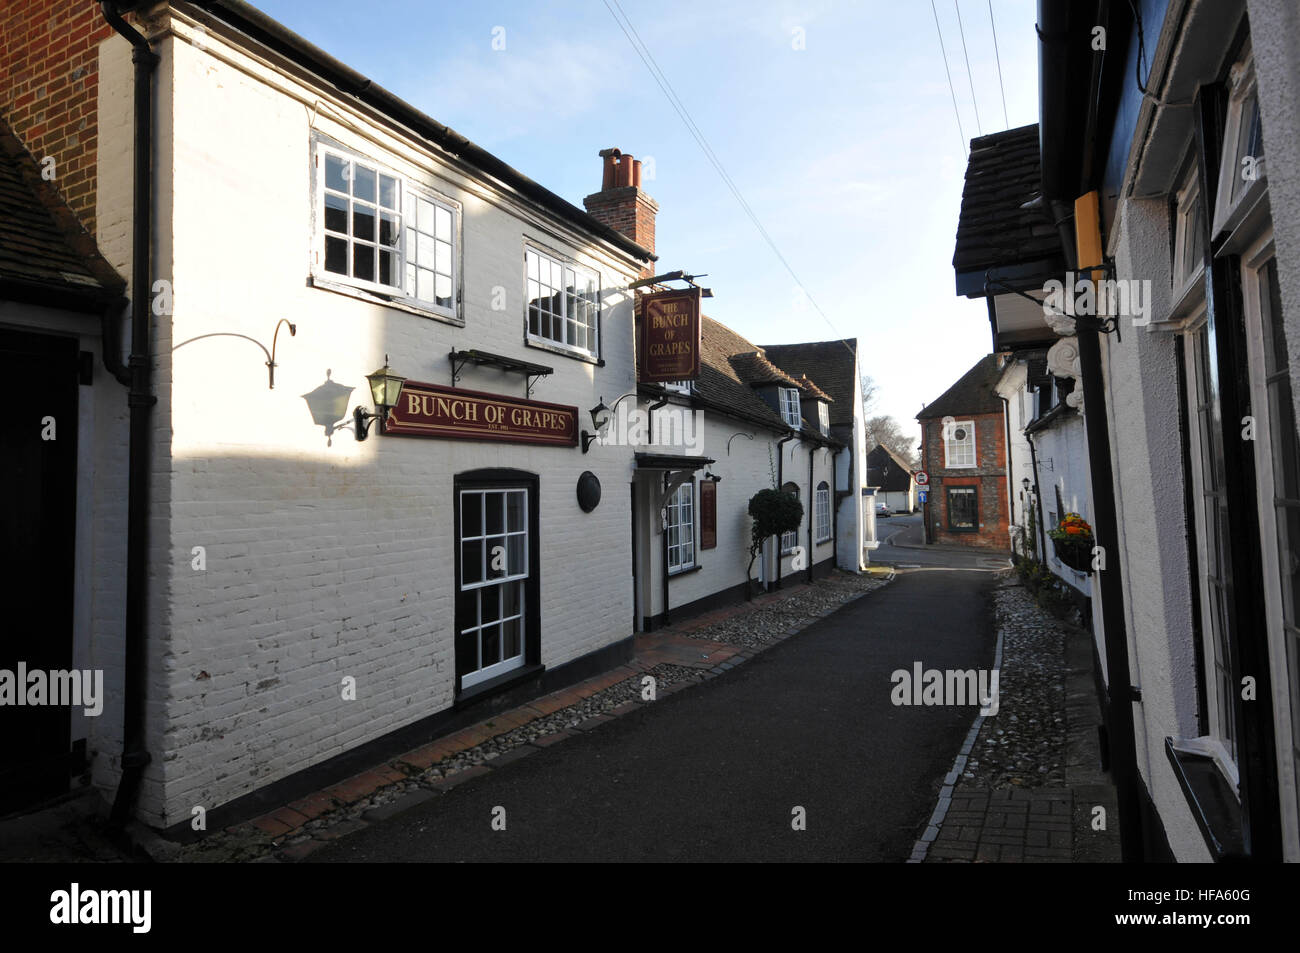 St Peters Street in Bishops Waltham, Bunch of grapes pub or Inn - Stock Image